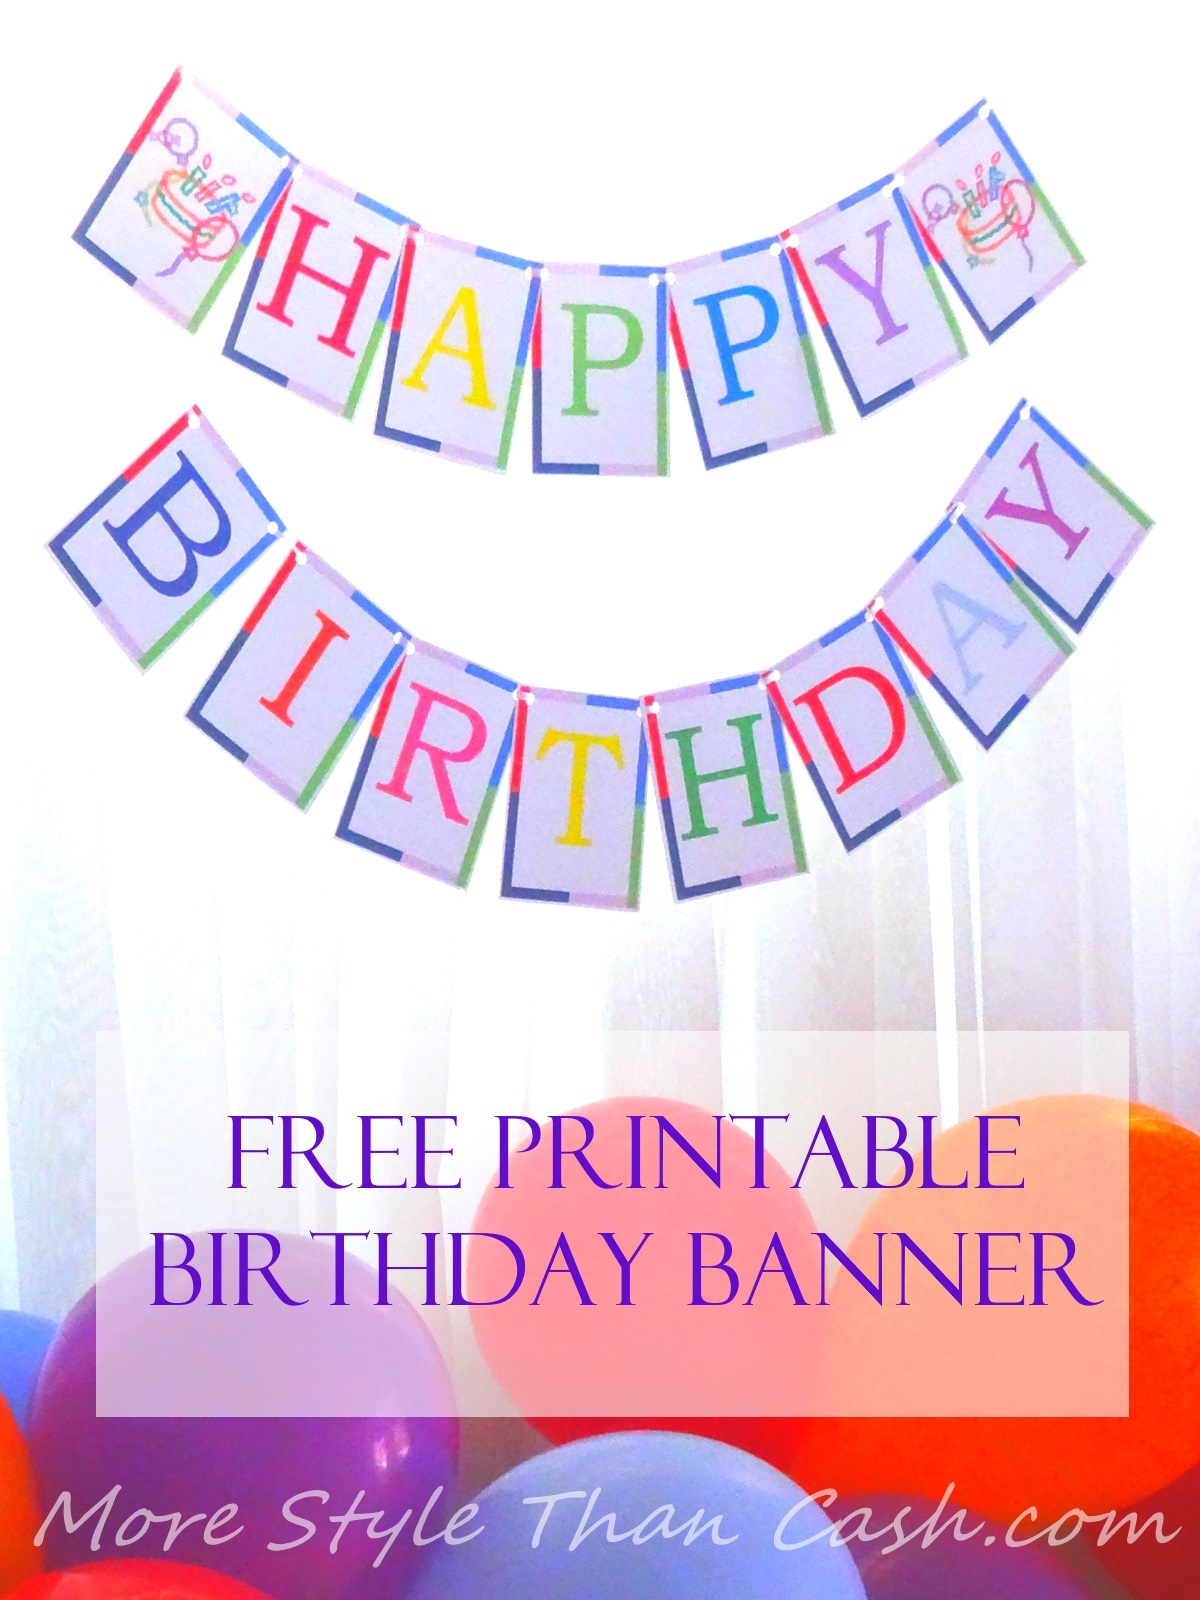 Free Printable Birthday Banner - Free Printable Happy Birthday Banner